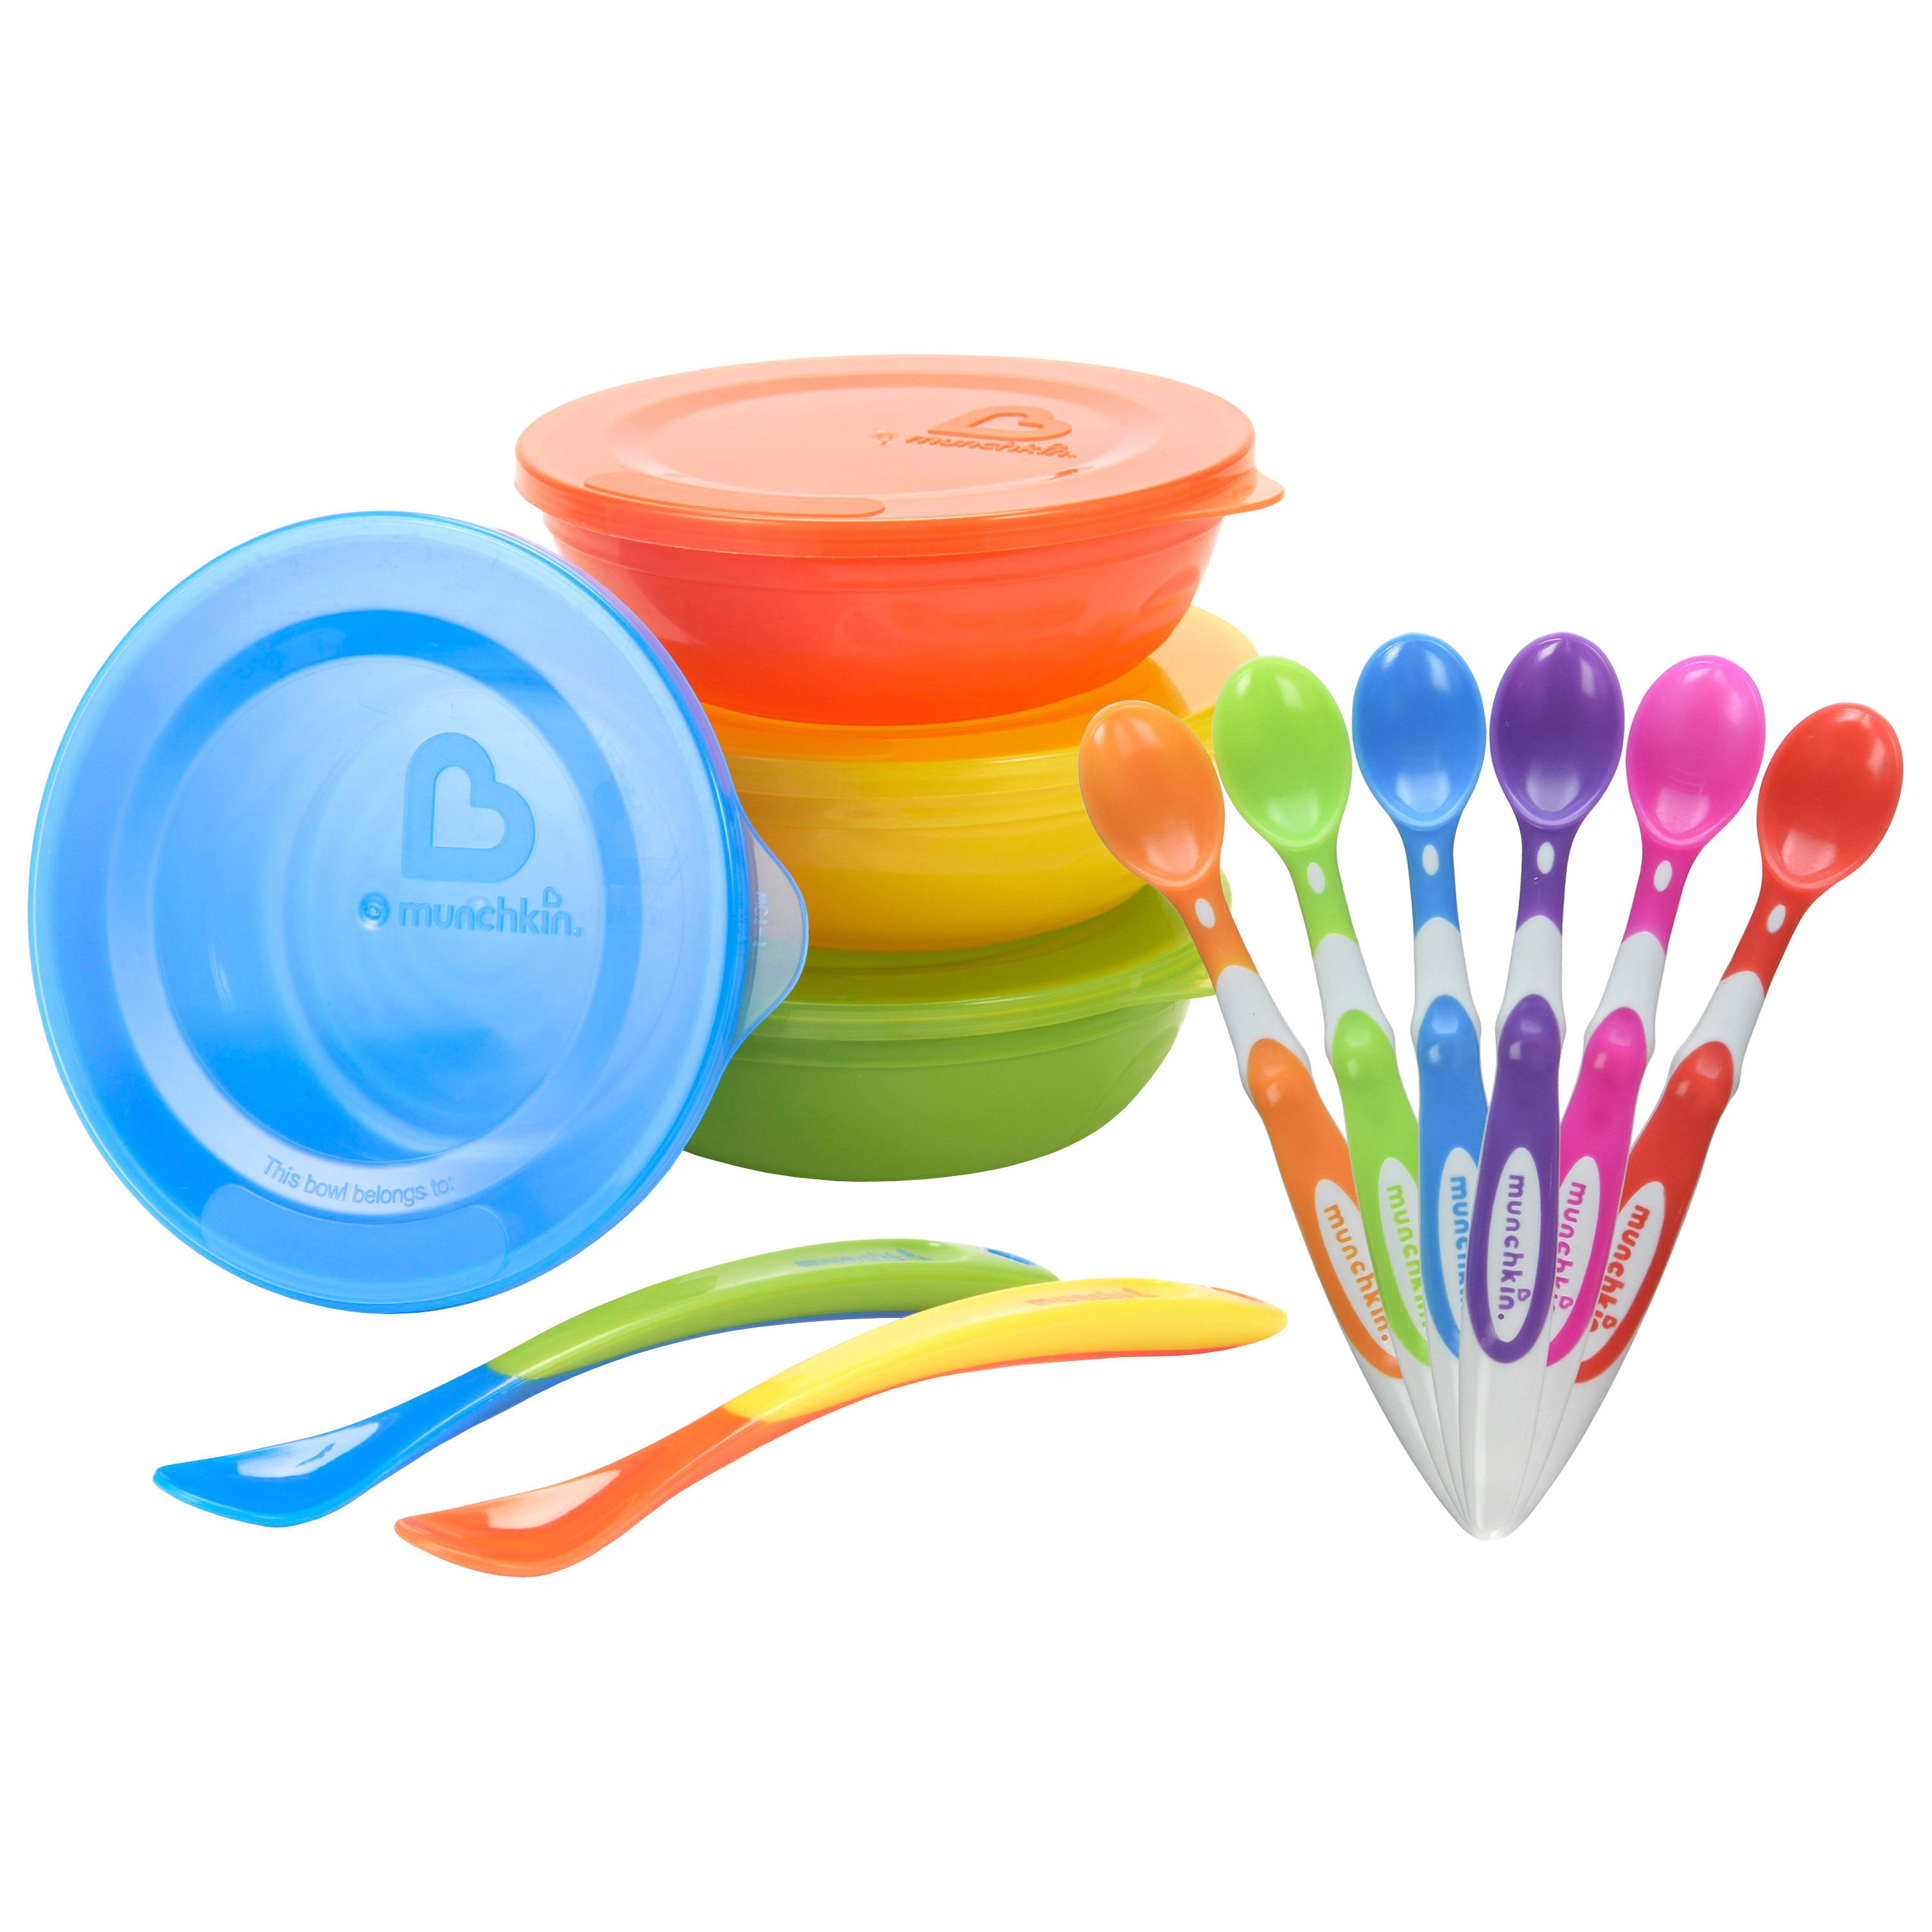 Munchkin Love-A-Bowls Set with Soft-Tip Infant Spoon 6 Count by Overstock